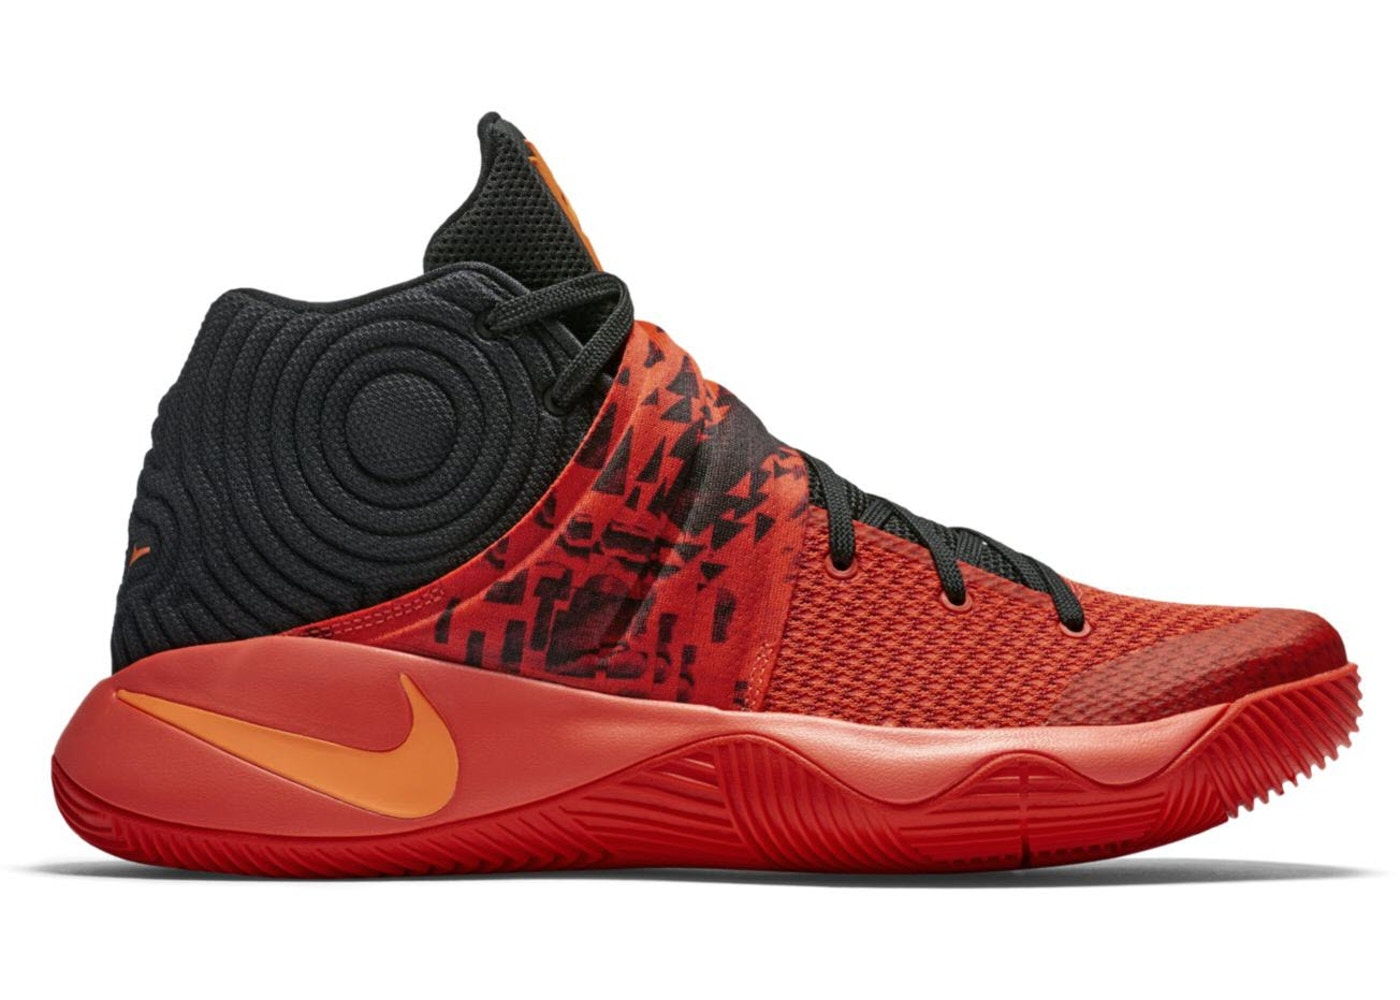 f0775d7d1be Kyrie 2 Inferno - 819583-680